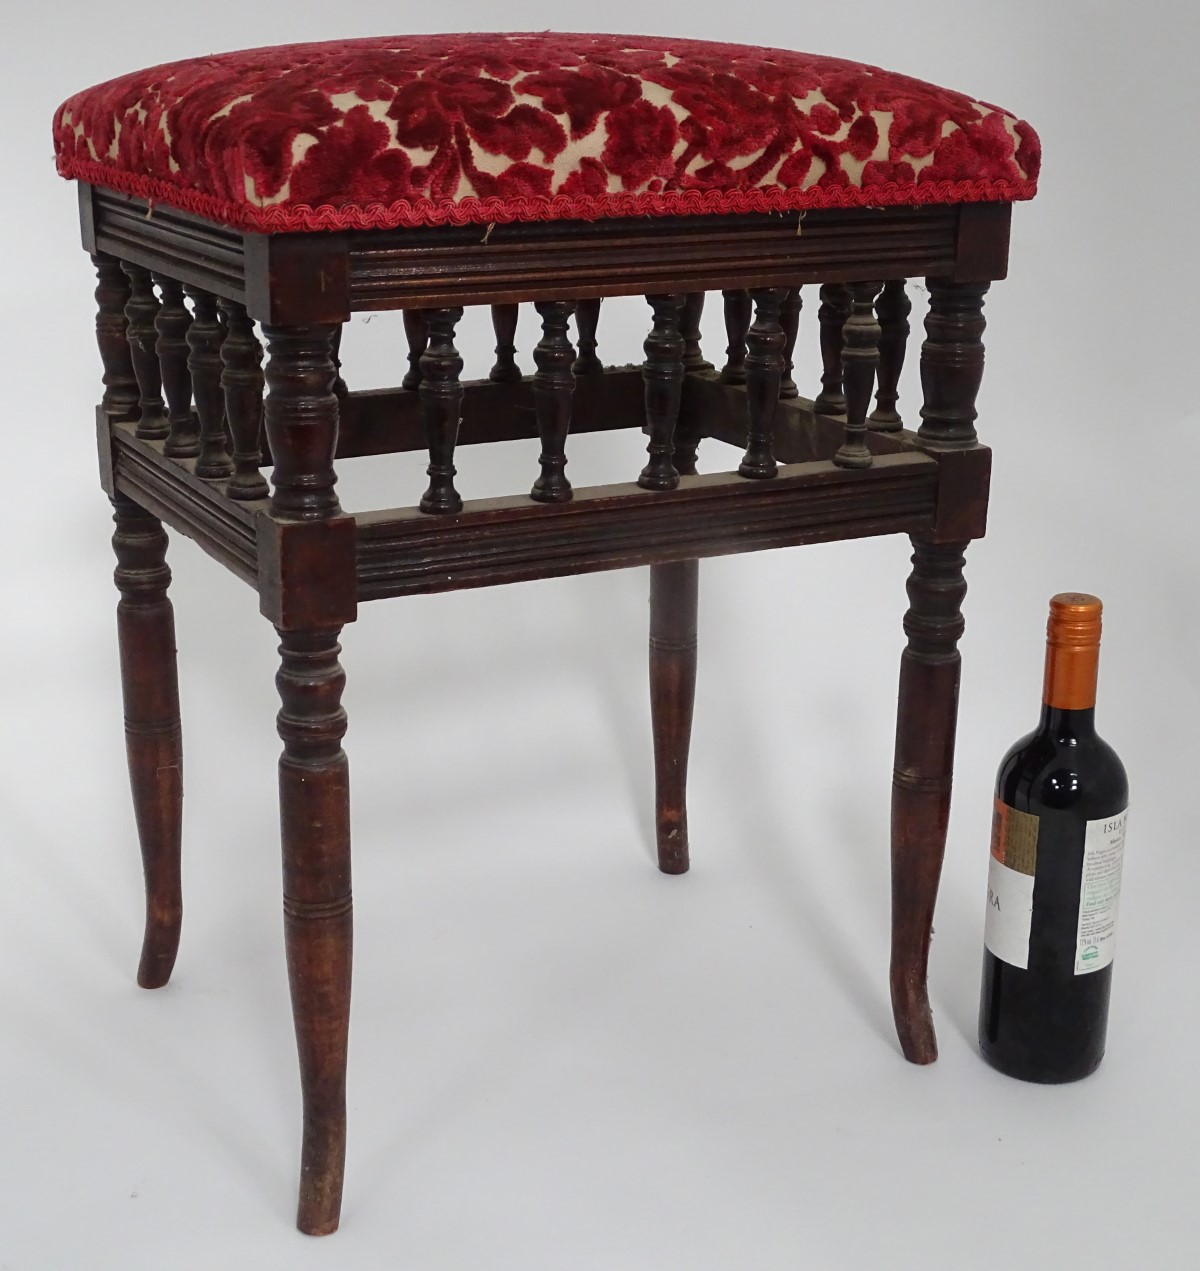 Lot 59 - An aesthetic movement style upholstered piano stool CONDITION: Please Note - we do